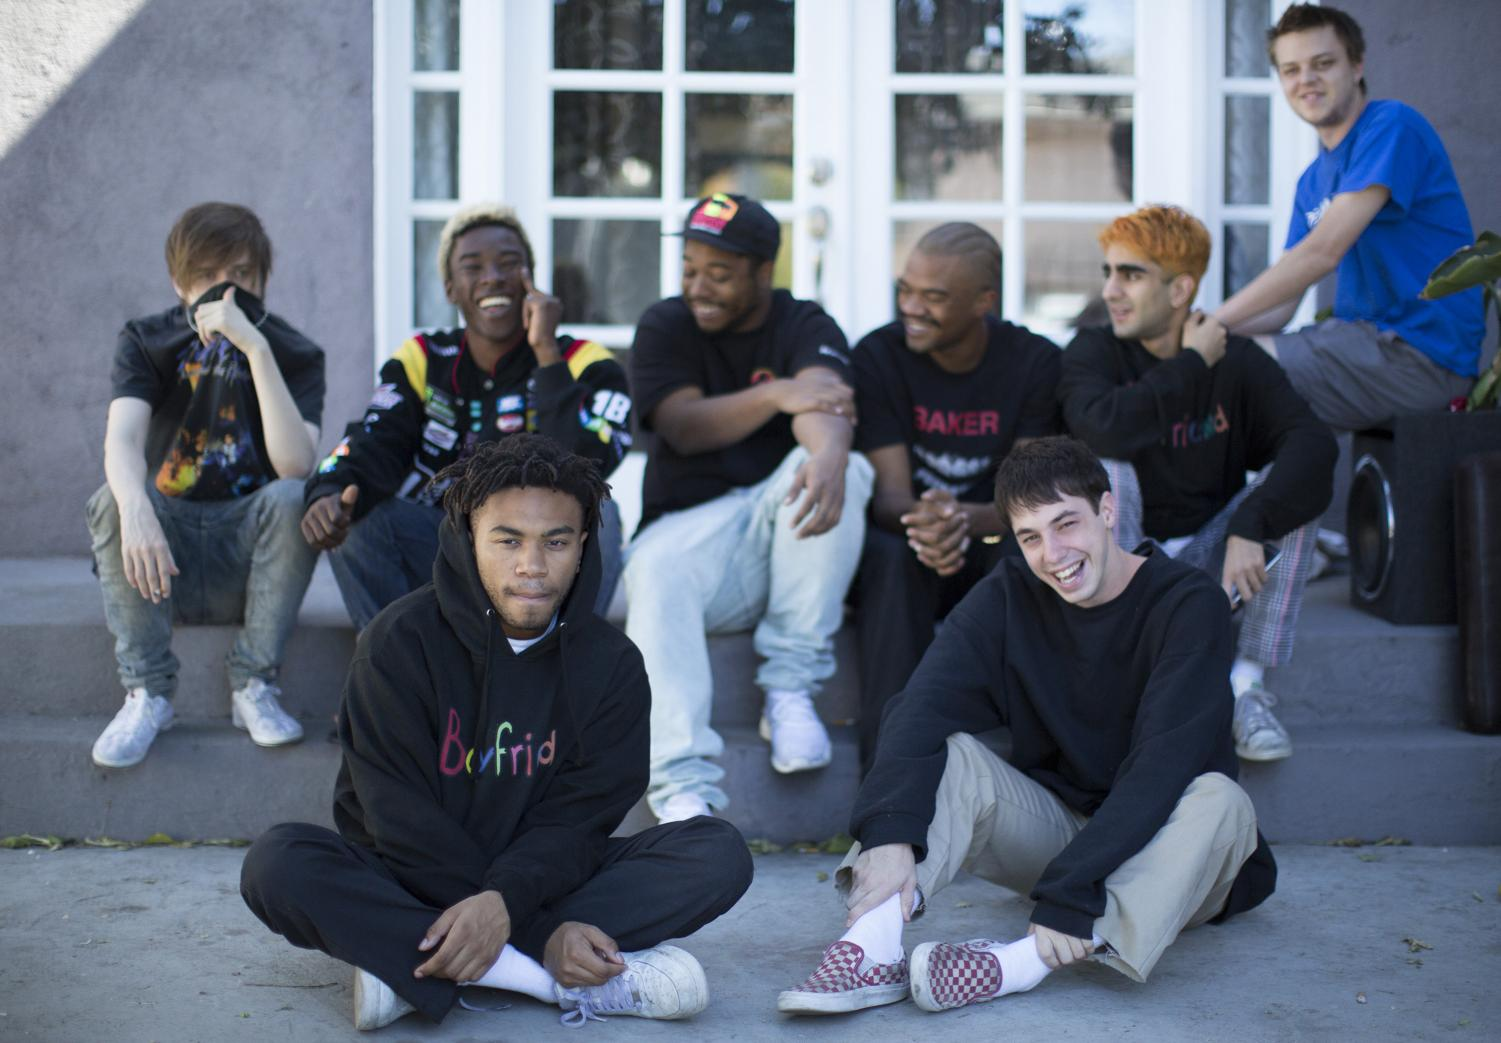 From front left, Kevin Abstract and Matt Champion; from rear left, bearface, Merlyn Wood, Dom McLennon, Ameer Vann, Romil Hemnani, JOBA. (Myung J. Chun/Los Angeles Times/TNS)